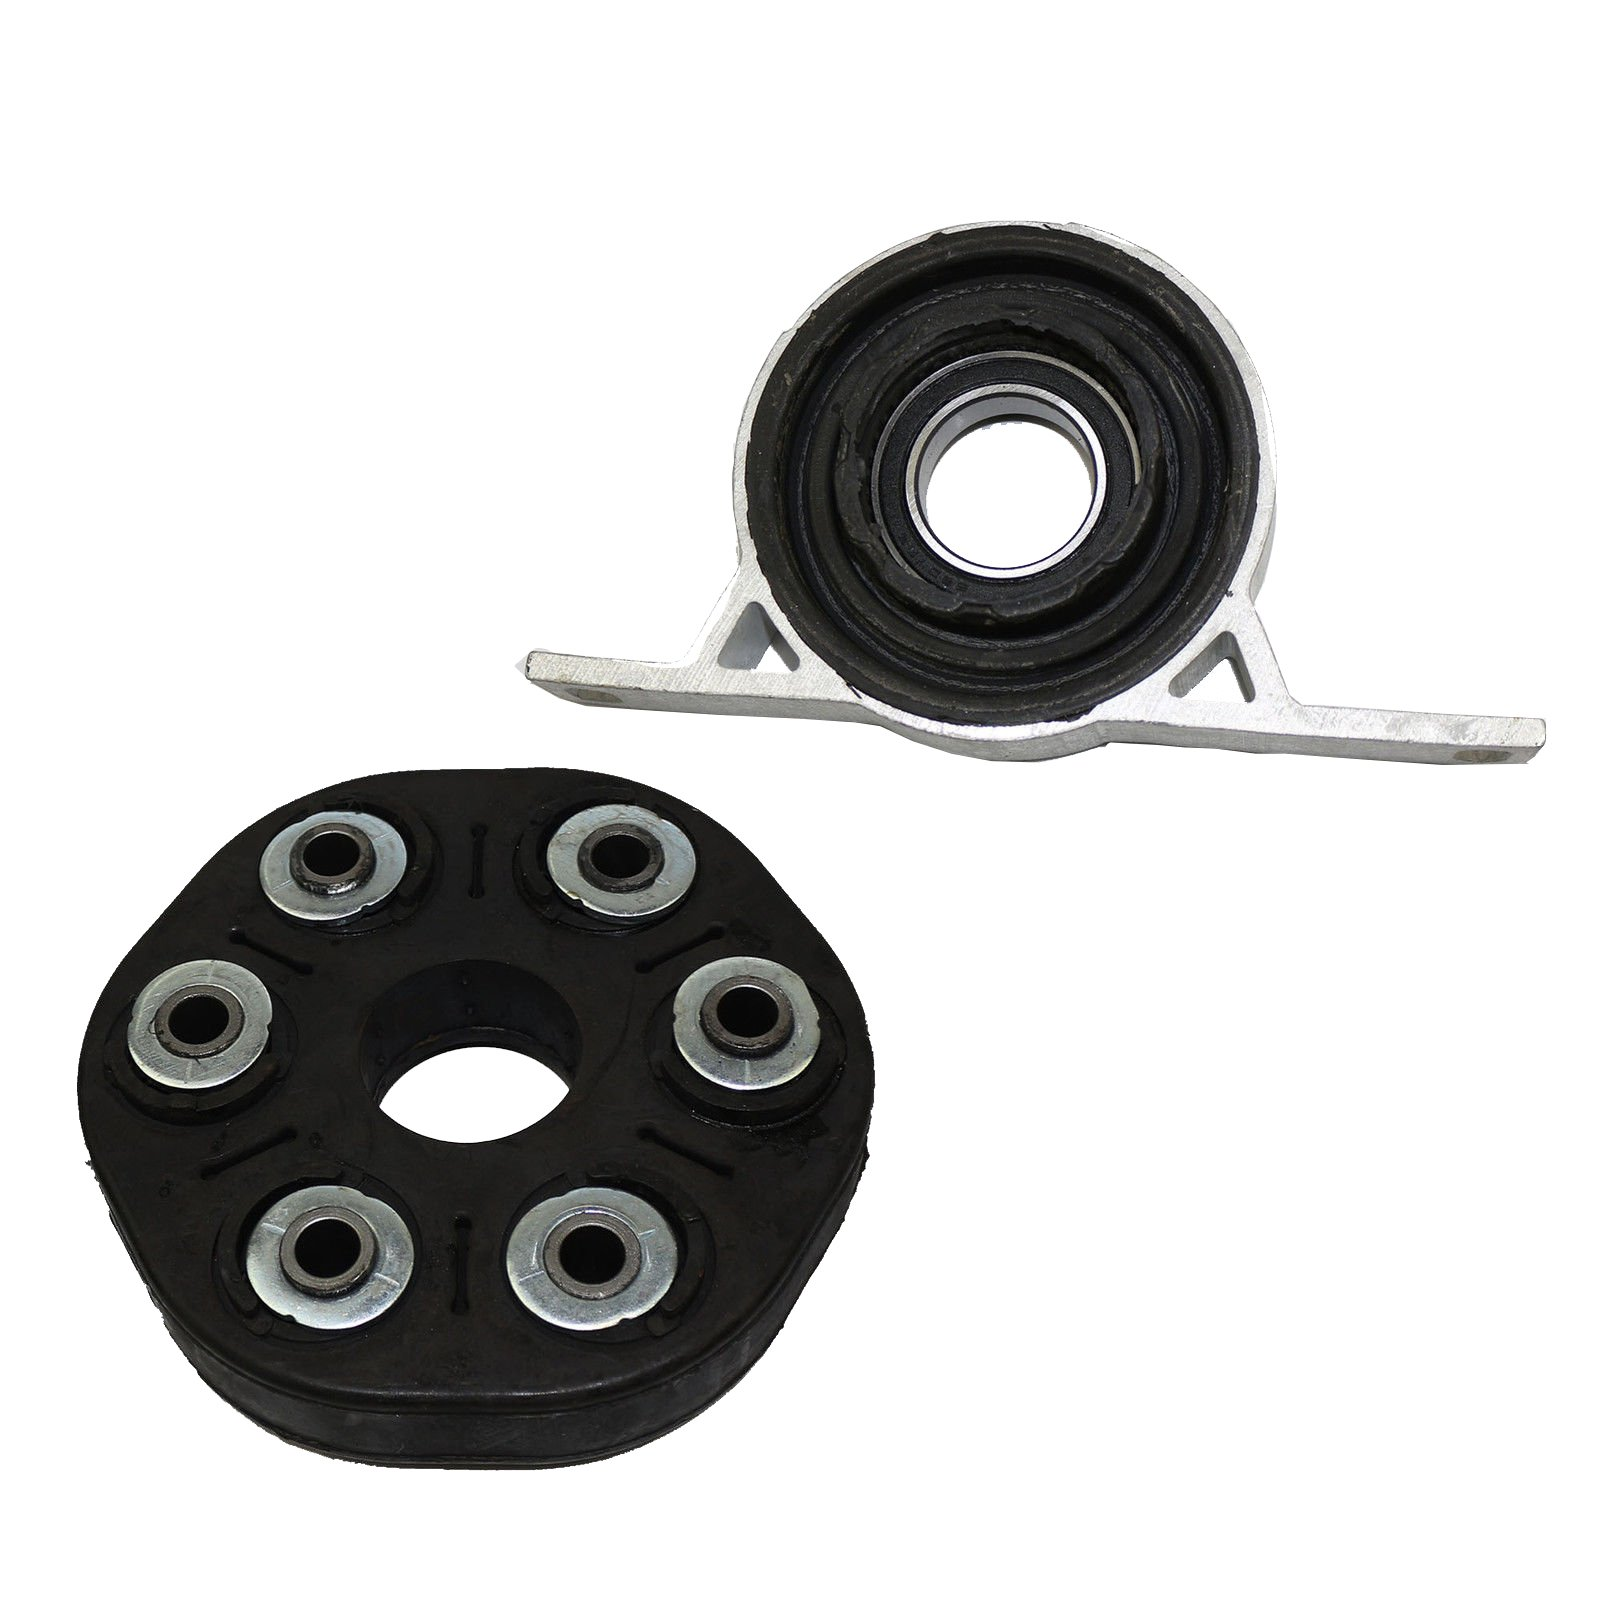 K KARL Drive Shaft Center Support Bearing & Flex Disc Joint Kit AFDDS1097-500